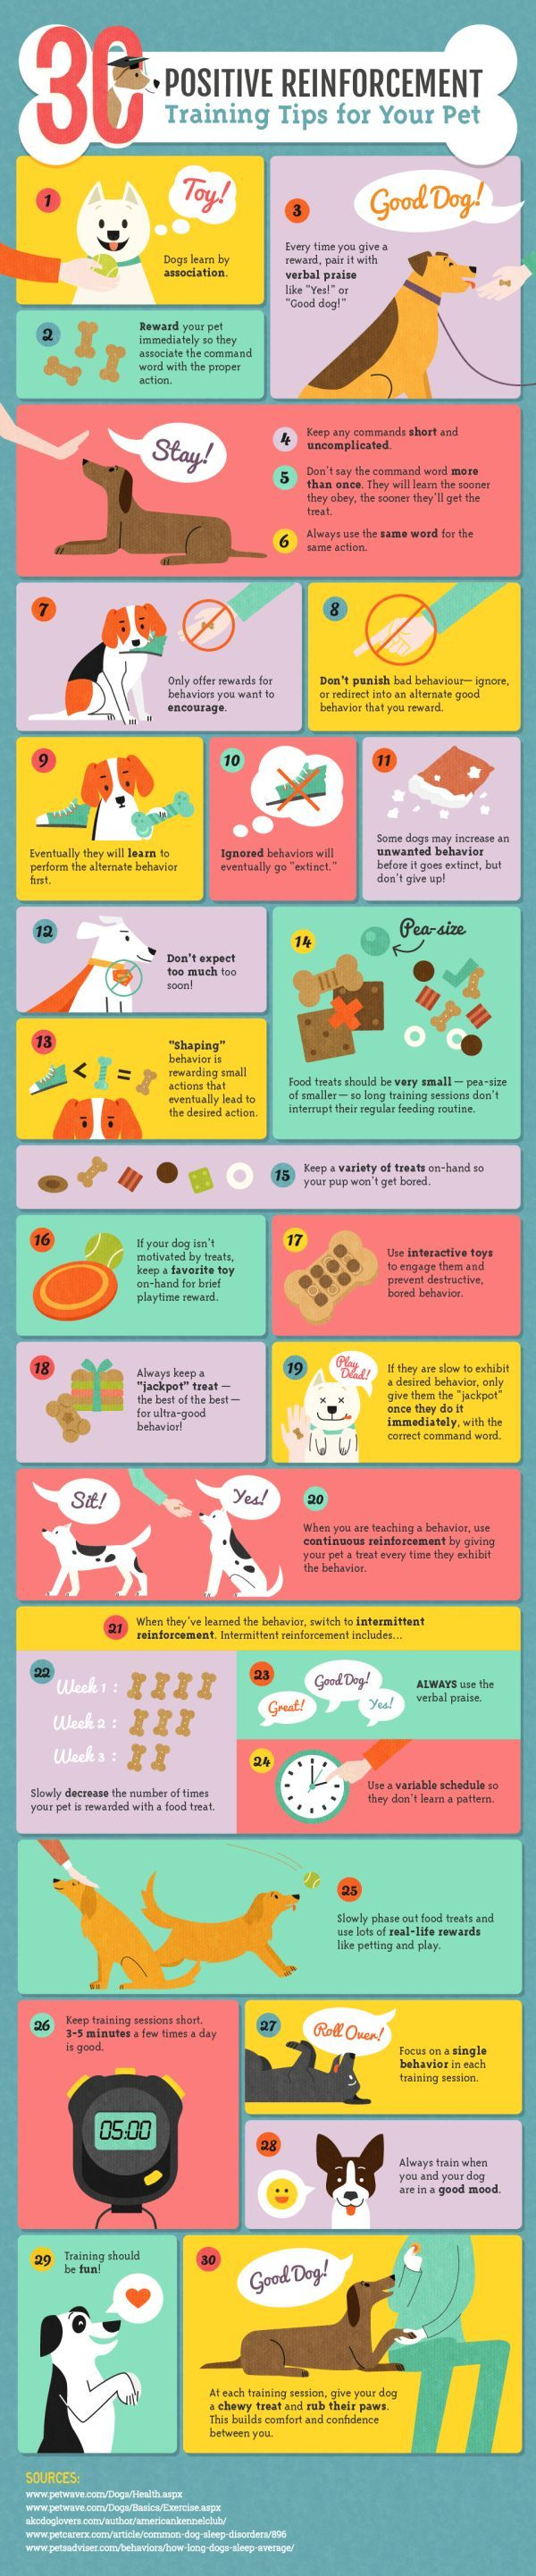 Positive Dog Training Infographic Amber Kingsley for DogBuddy Blog